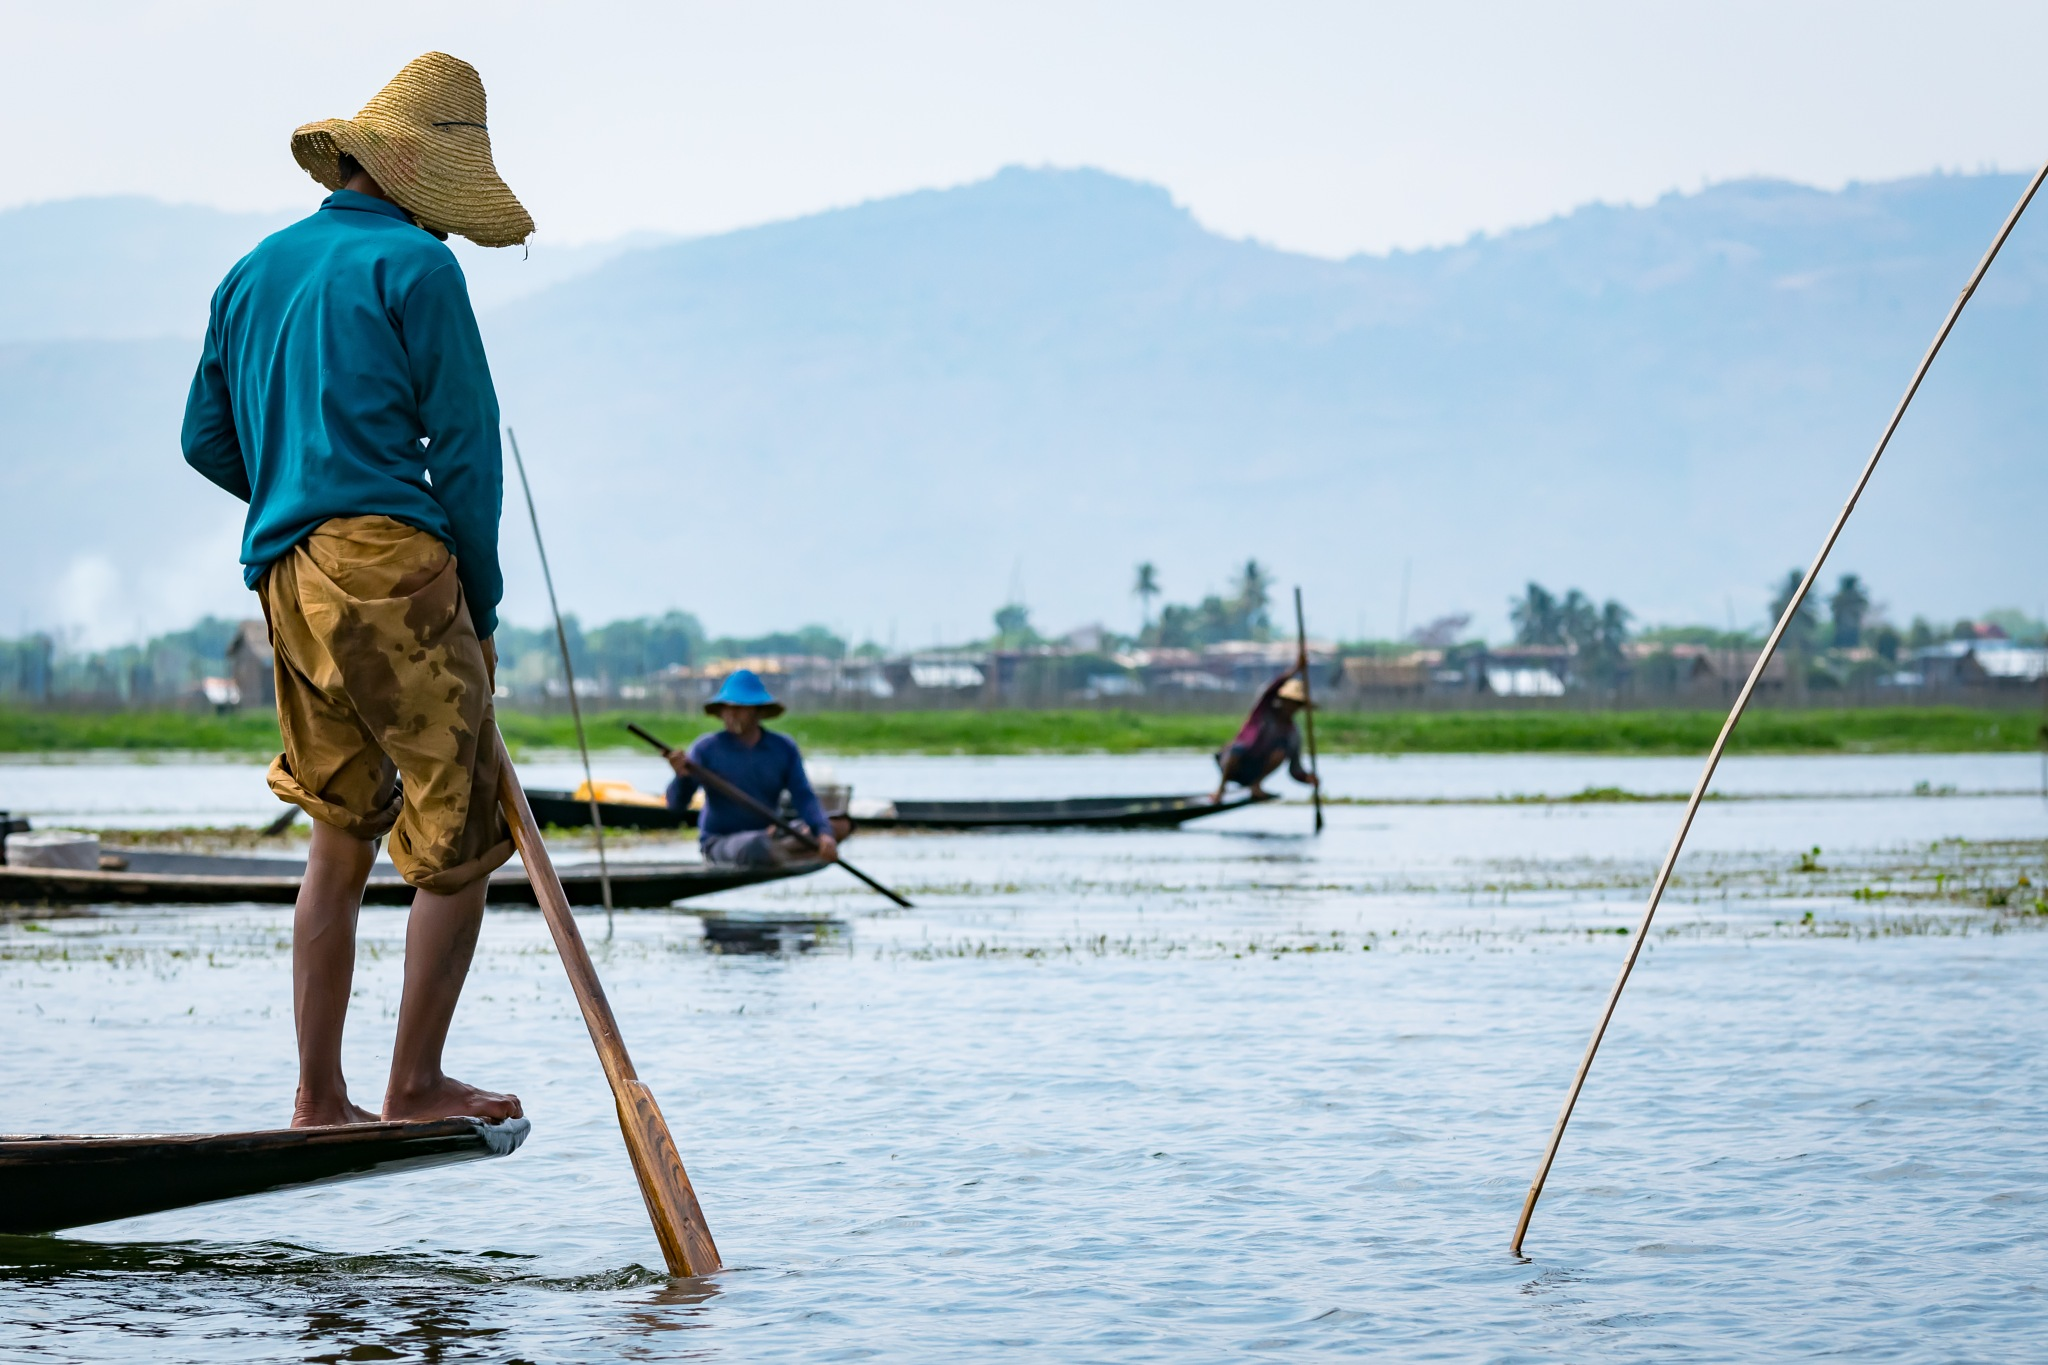 Fishermen at Inle Lake III by Jose Miguel Moya Gonzalez